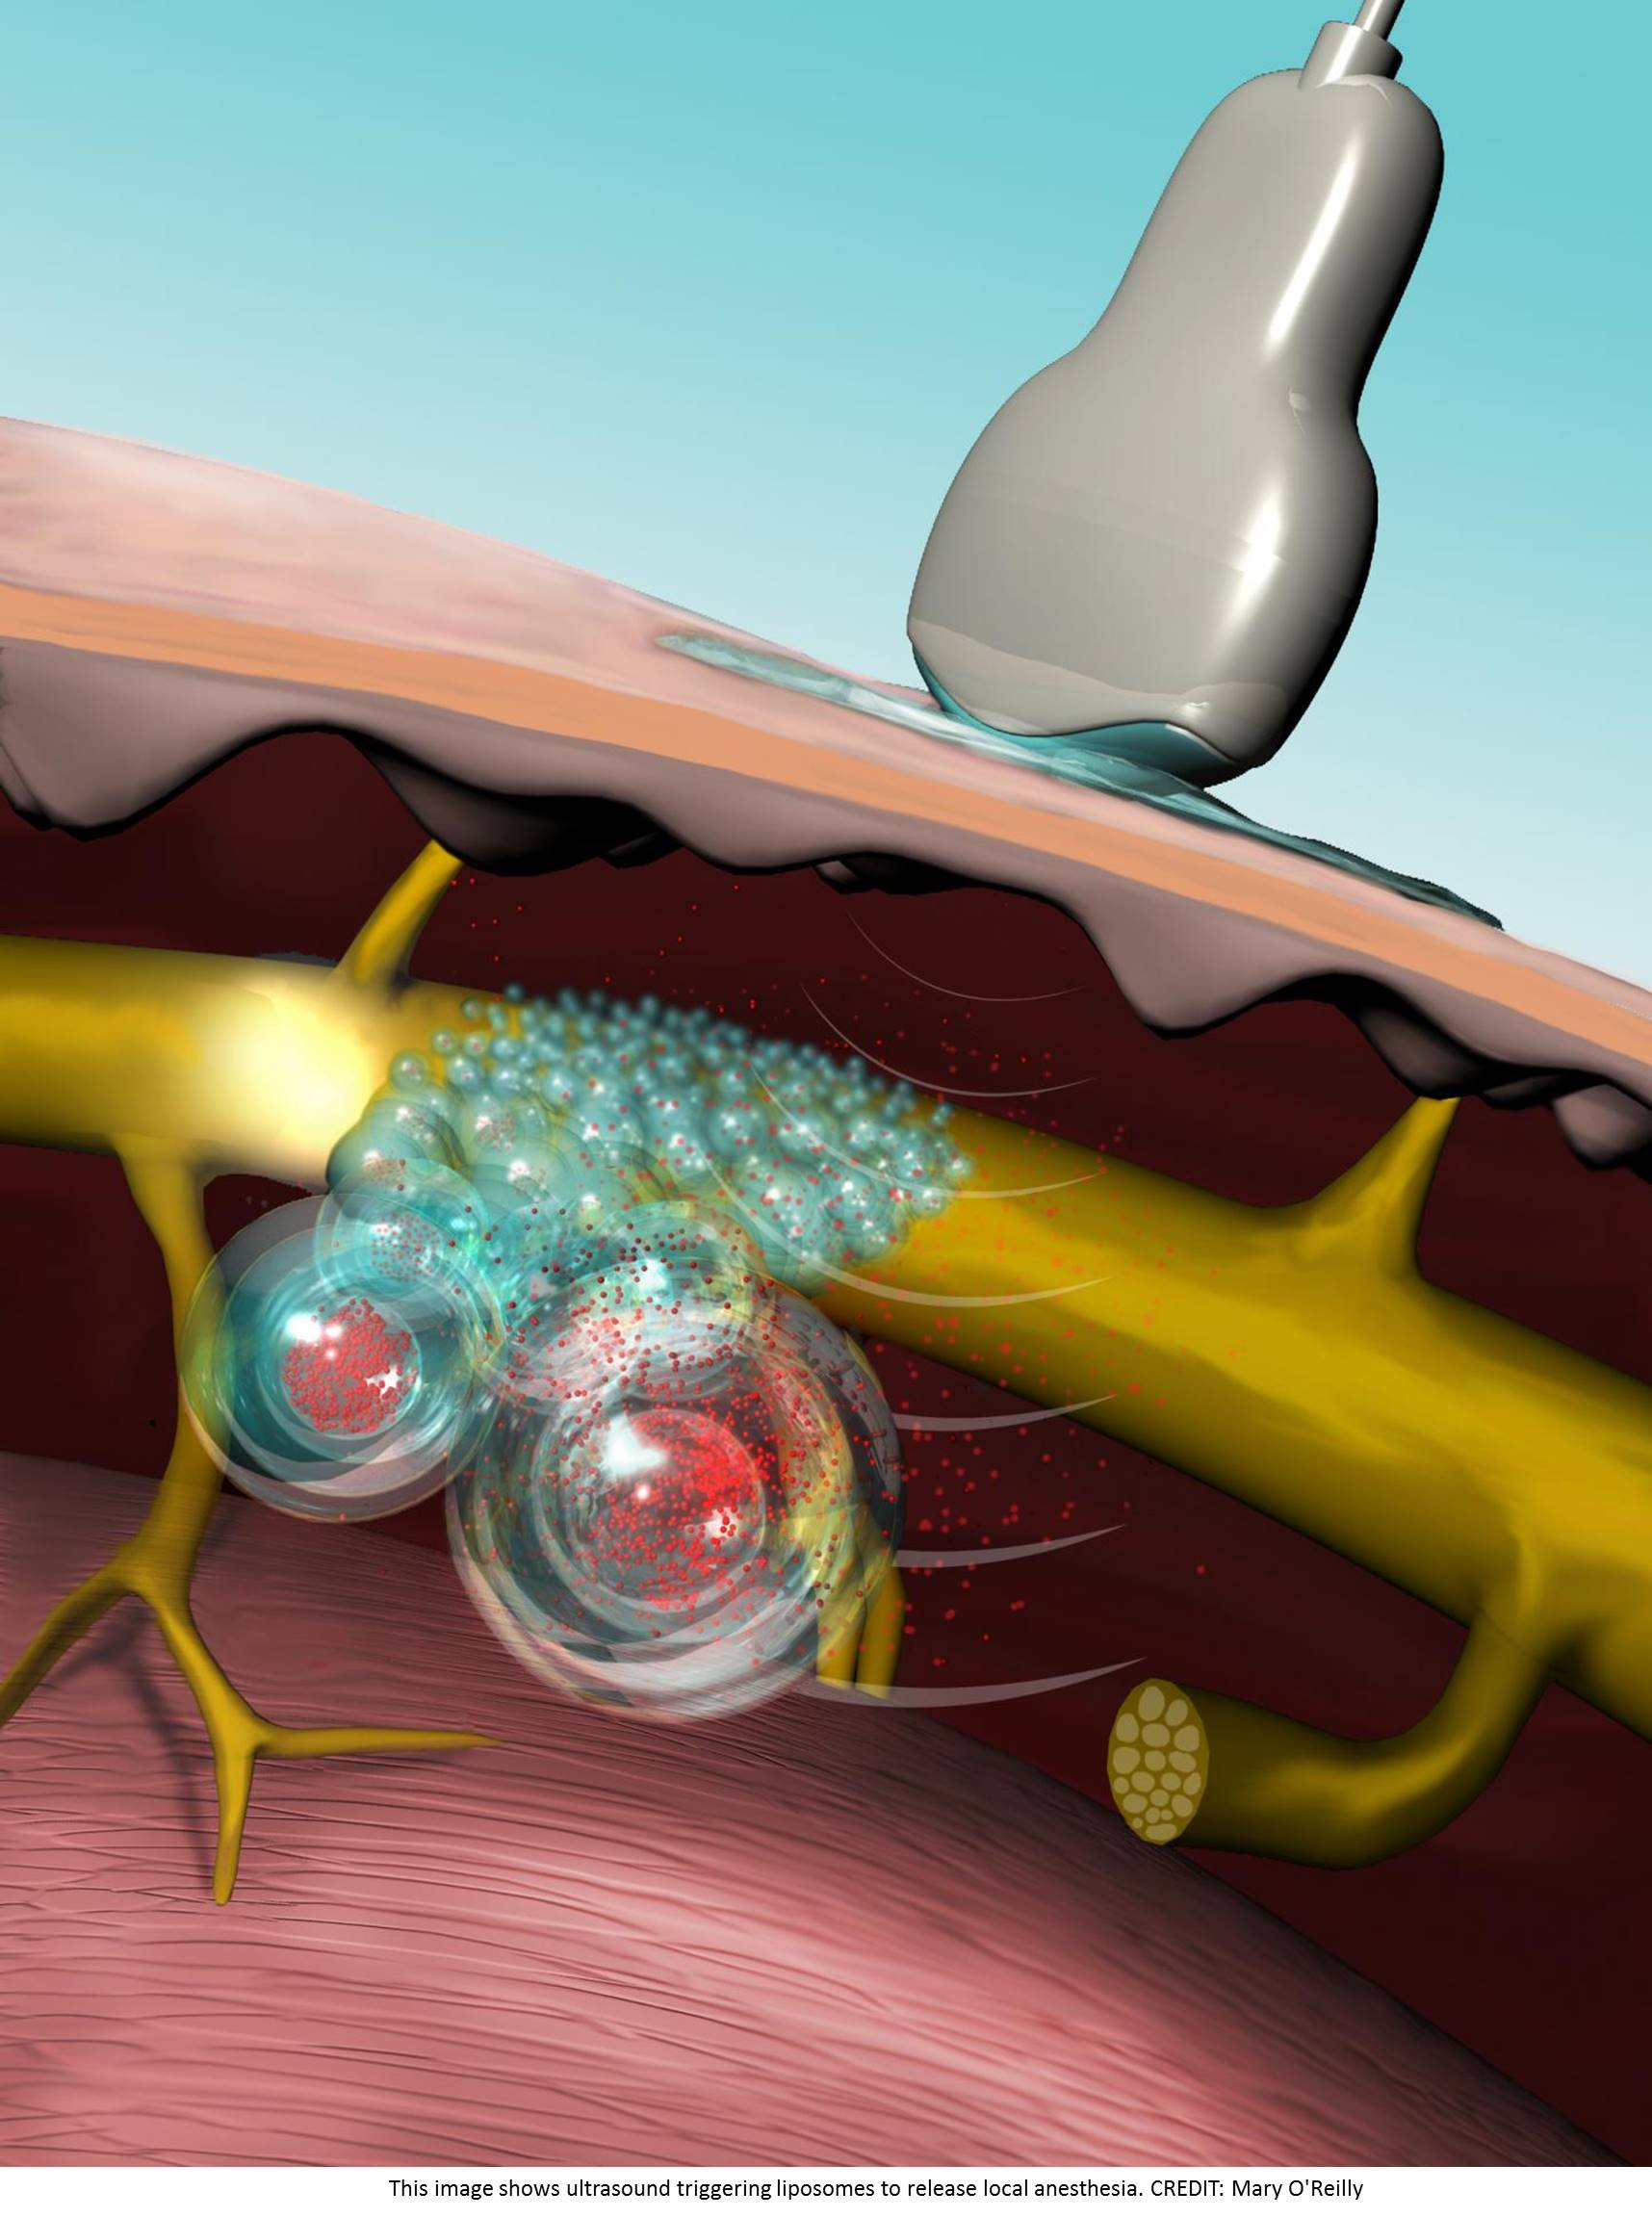 Ultrasound-triggered liposomes for on-demand, local pain relief